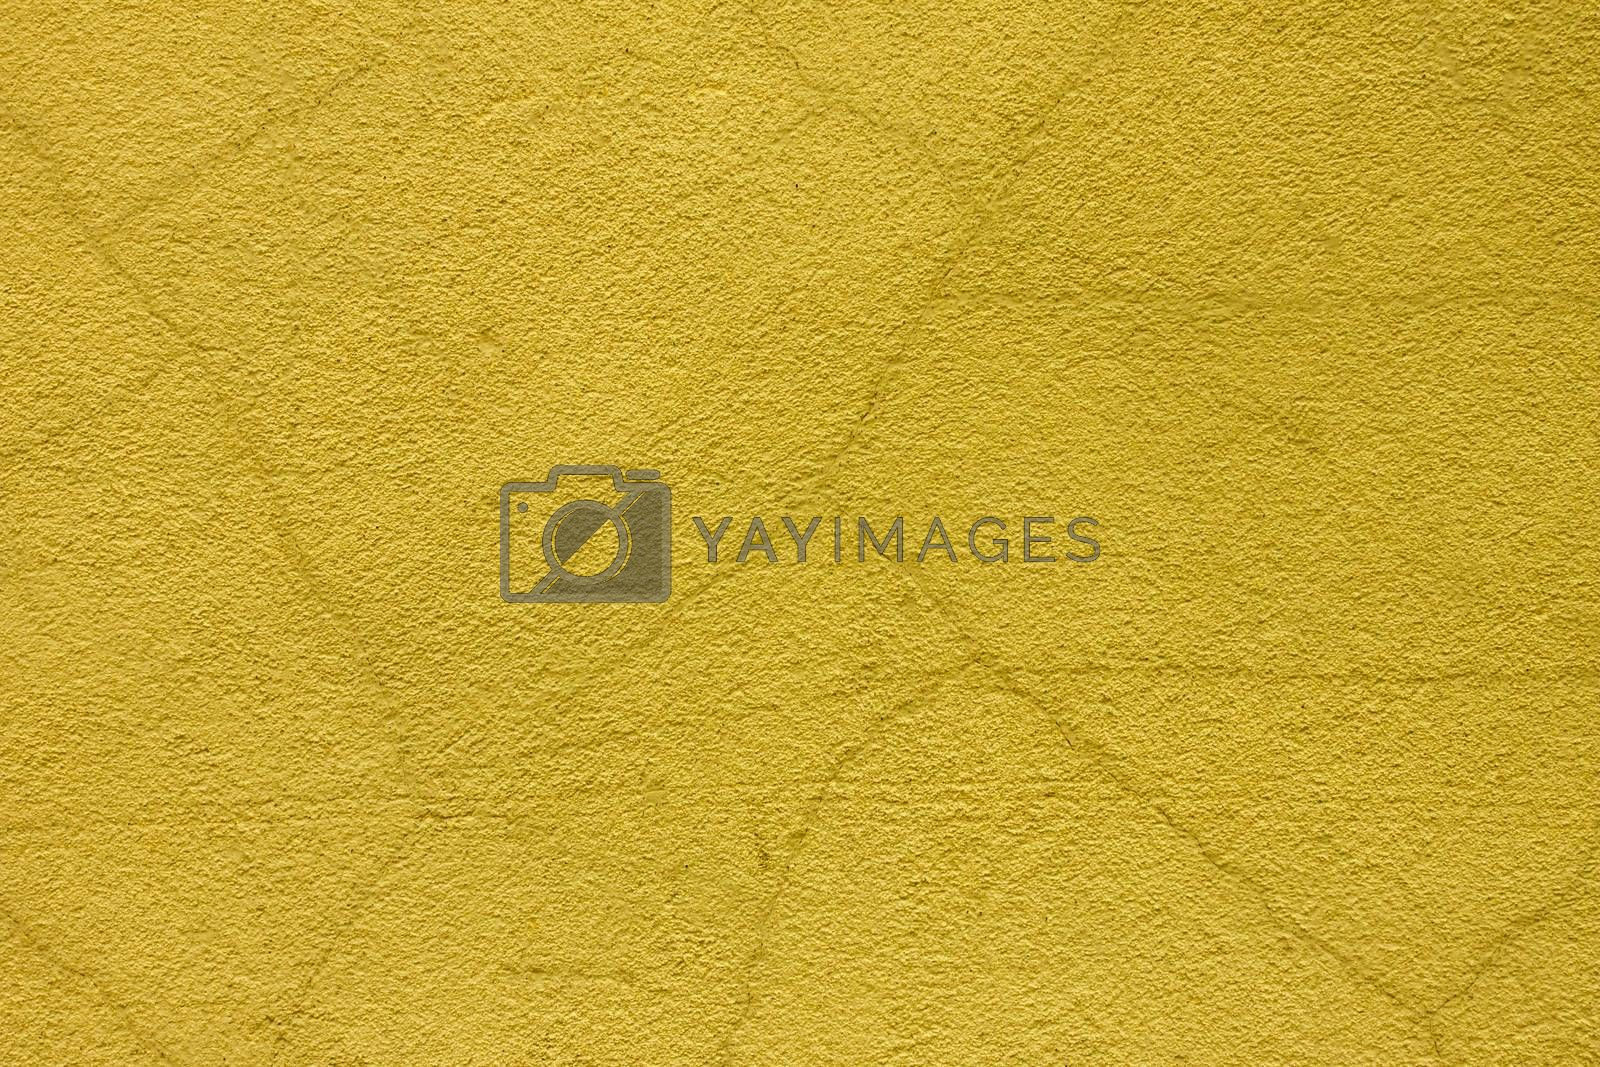 Royalty free image of old yellow grunge background texture  by RTsubin